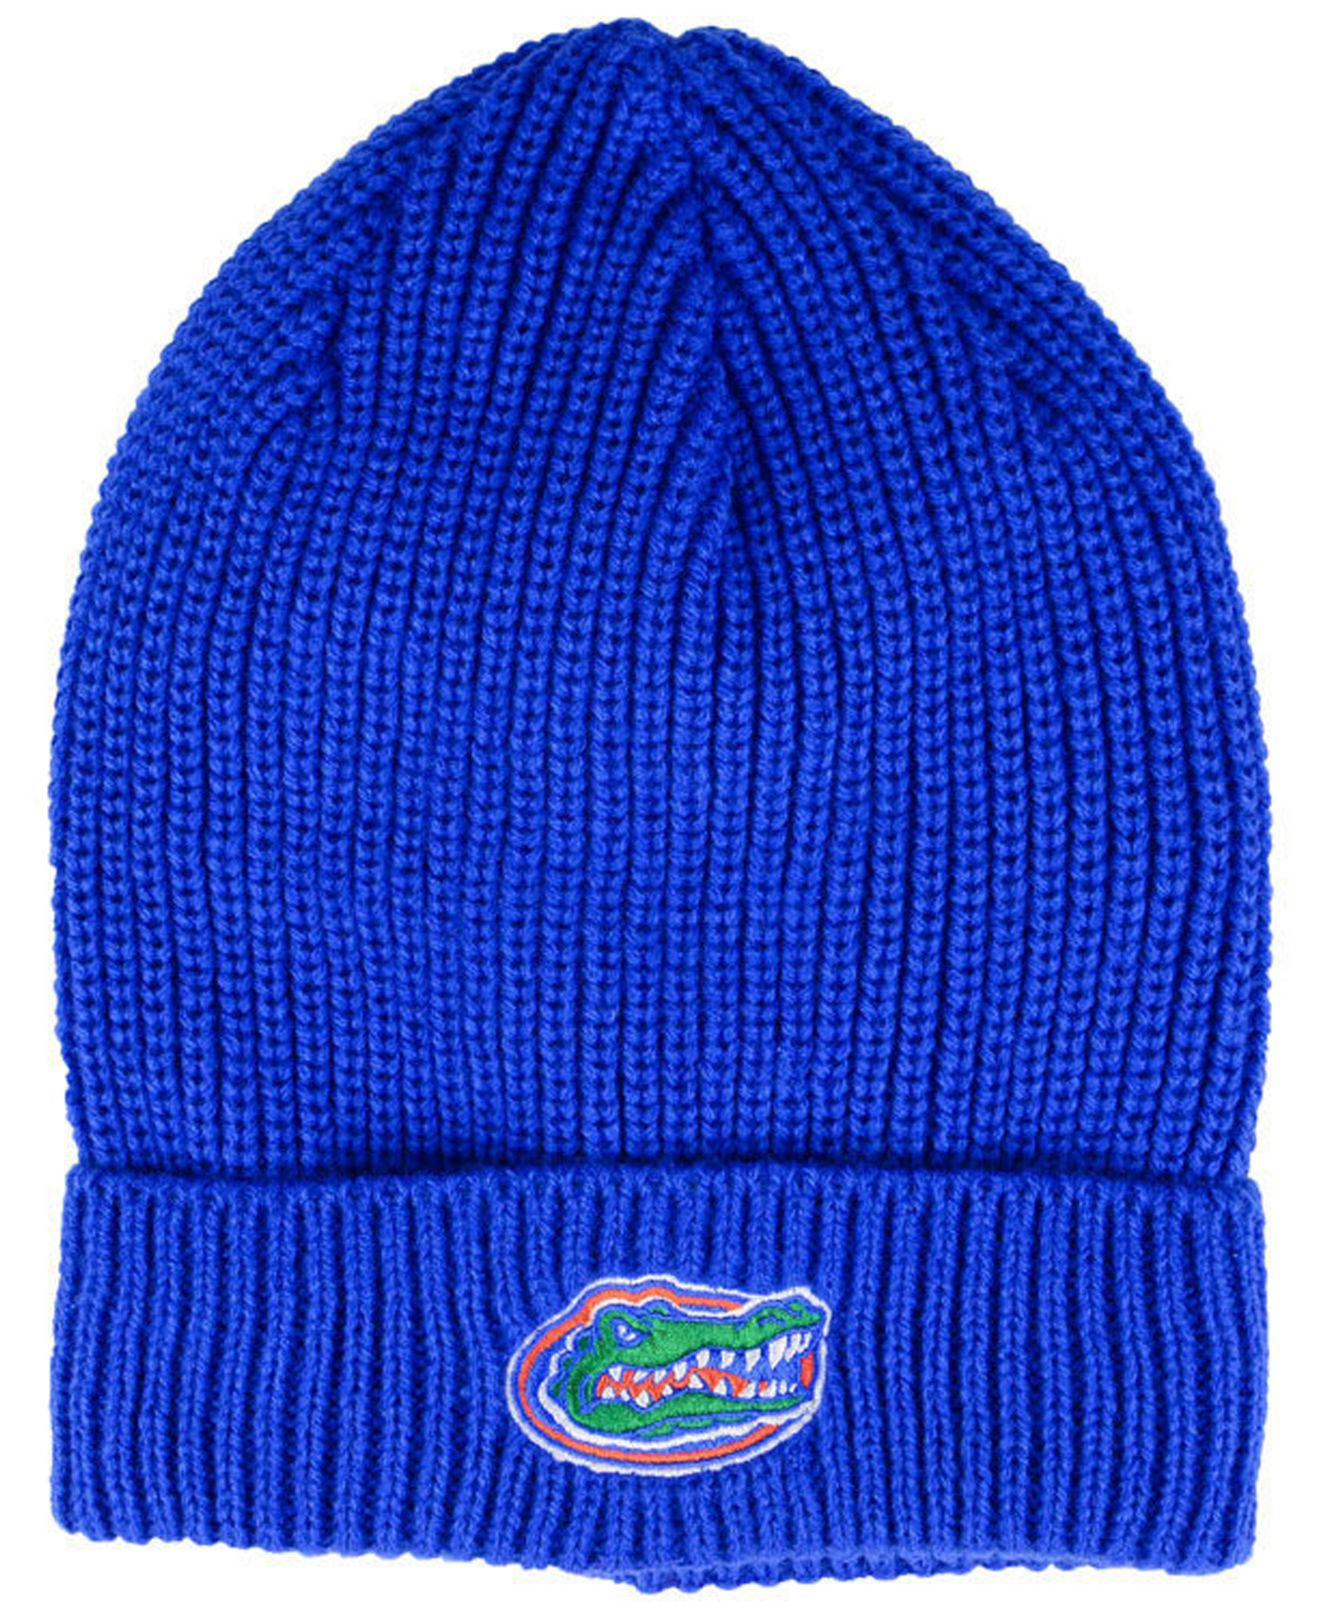 d384426f54eb6 Lyst - Nike Cuffed Knit Hat in Blue for Men